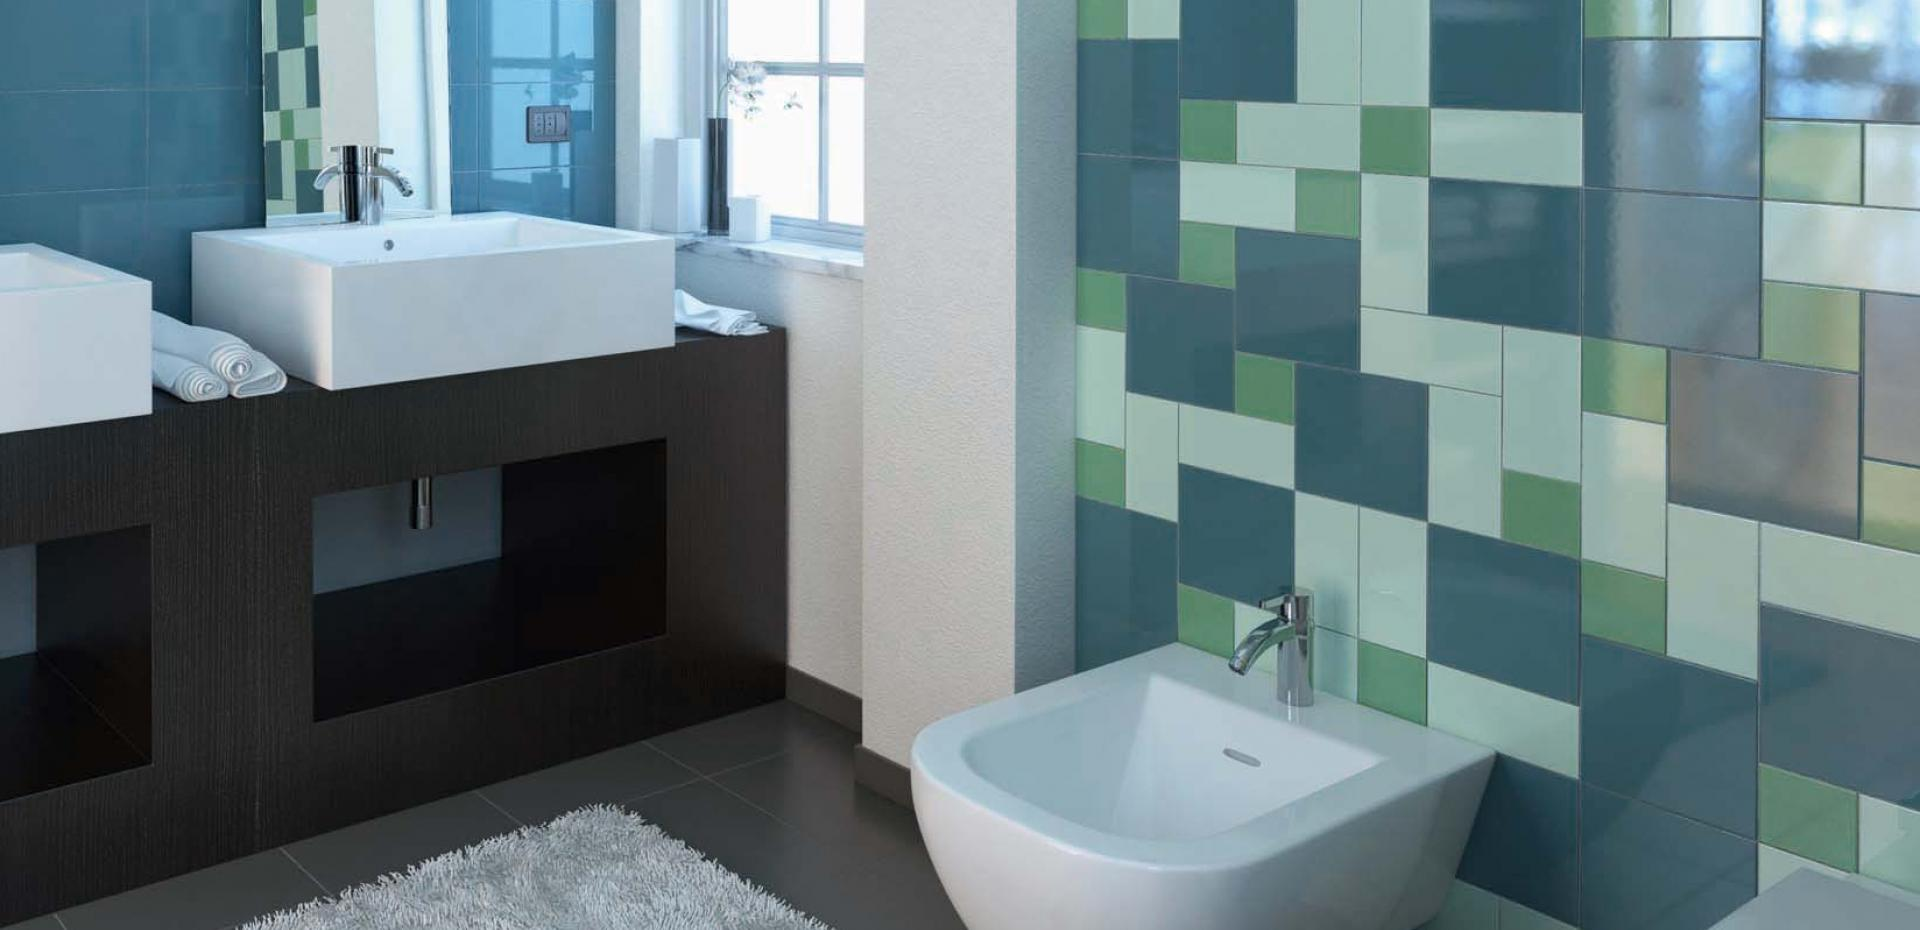 Piastrelle bagno colorate fabulous trasparenze collection with piastrelle bagno blu mare with - Incollare piastrelle su piastrelle bagno ...